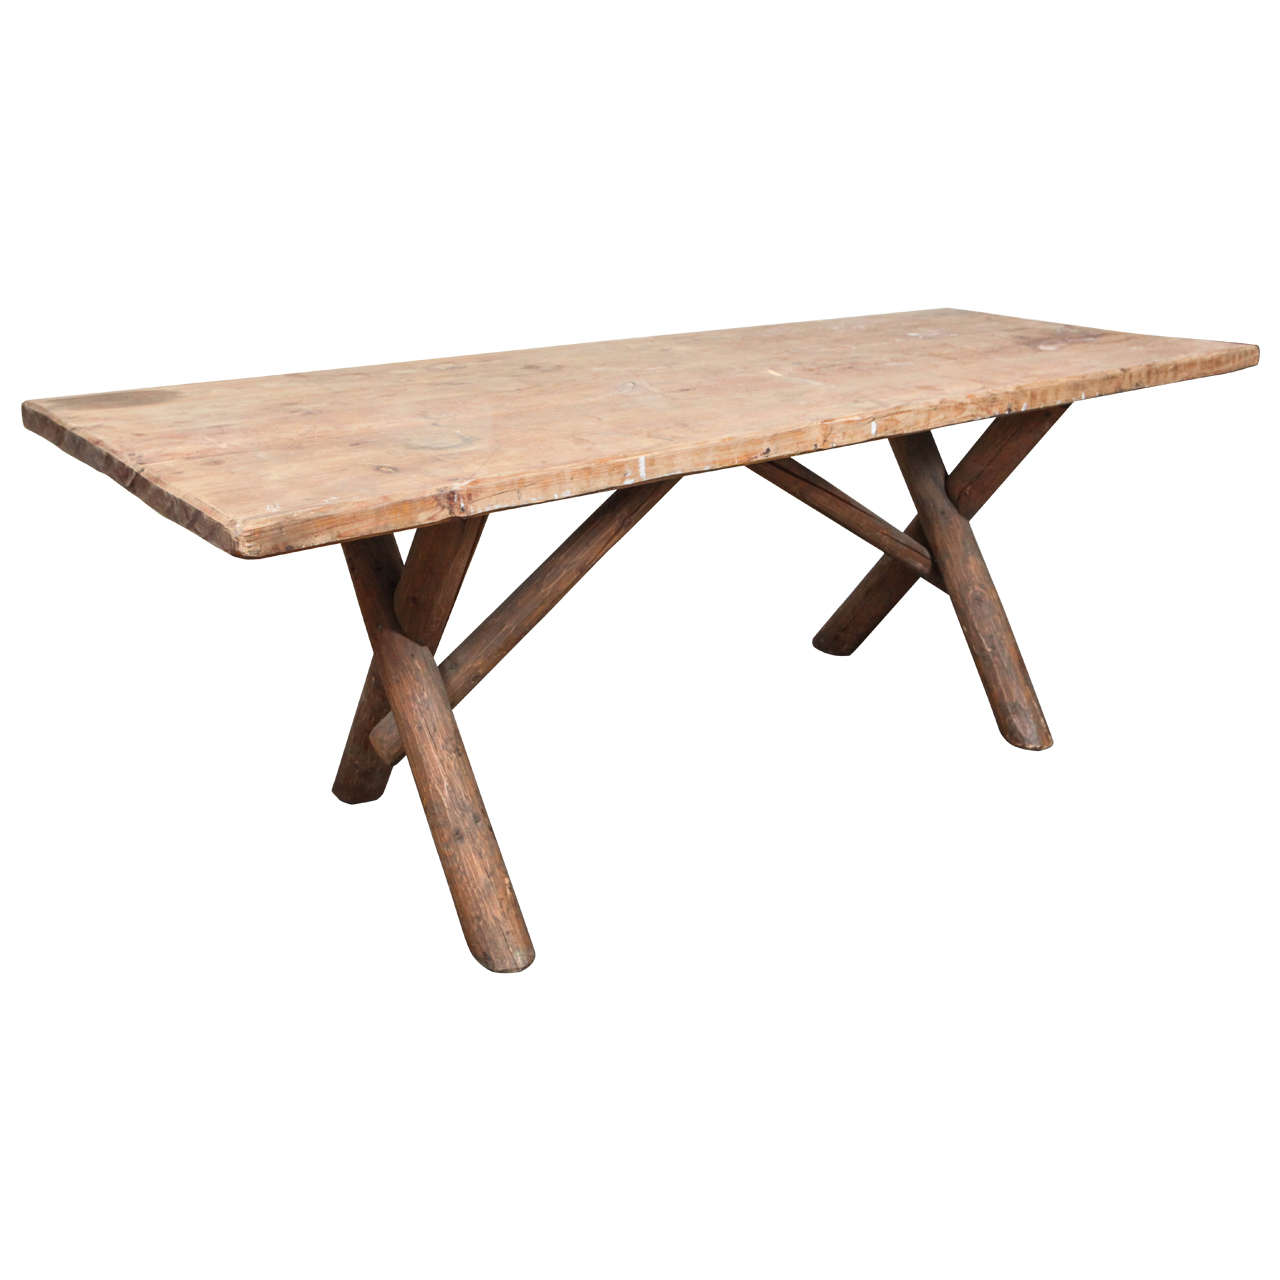 rustic american dining farm table with x base at 1stdibs. Black Bedroom Furniture Sets. Home Design Ideas